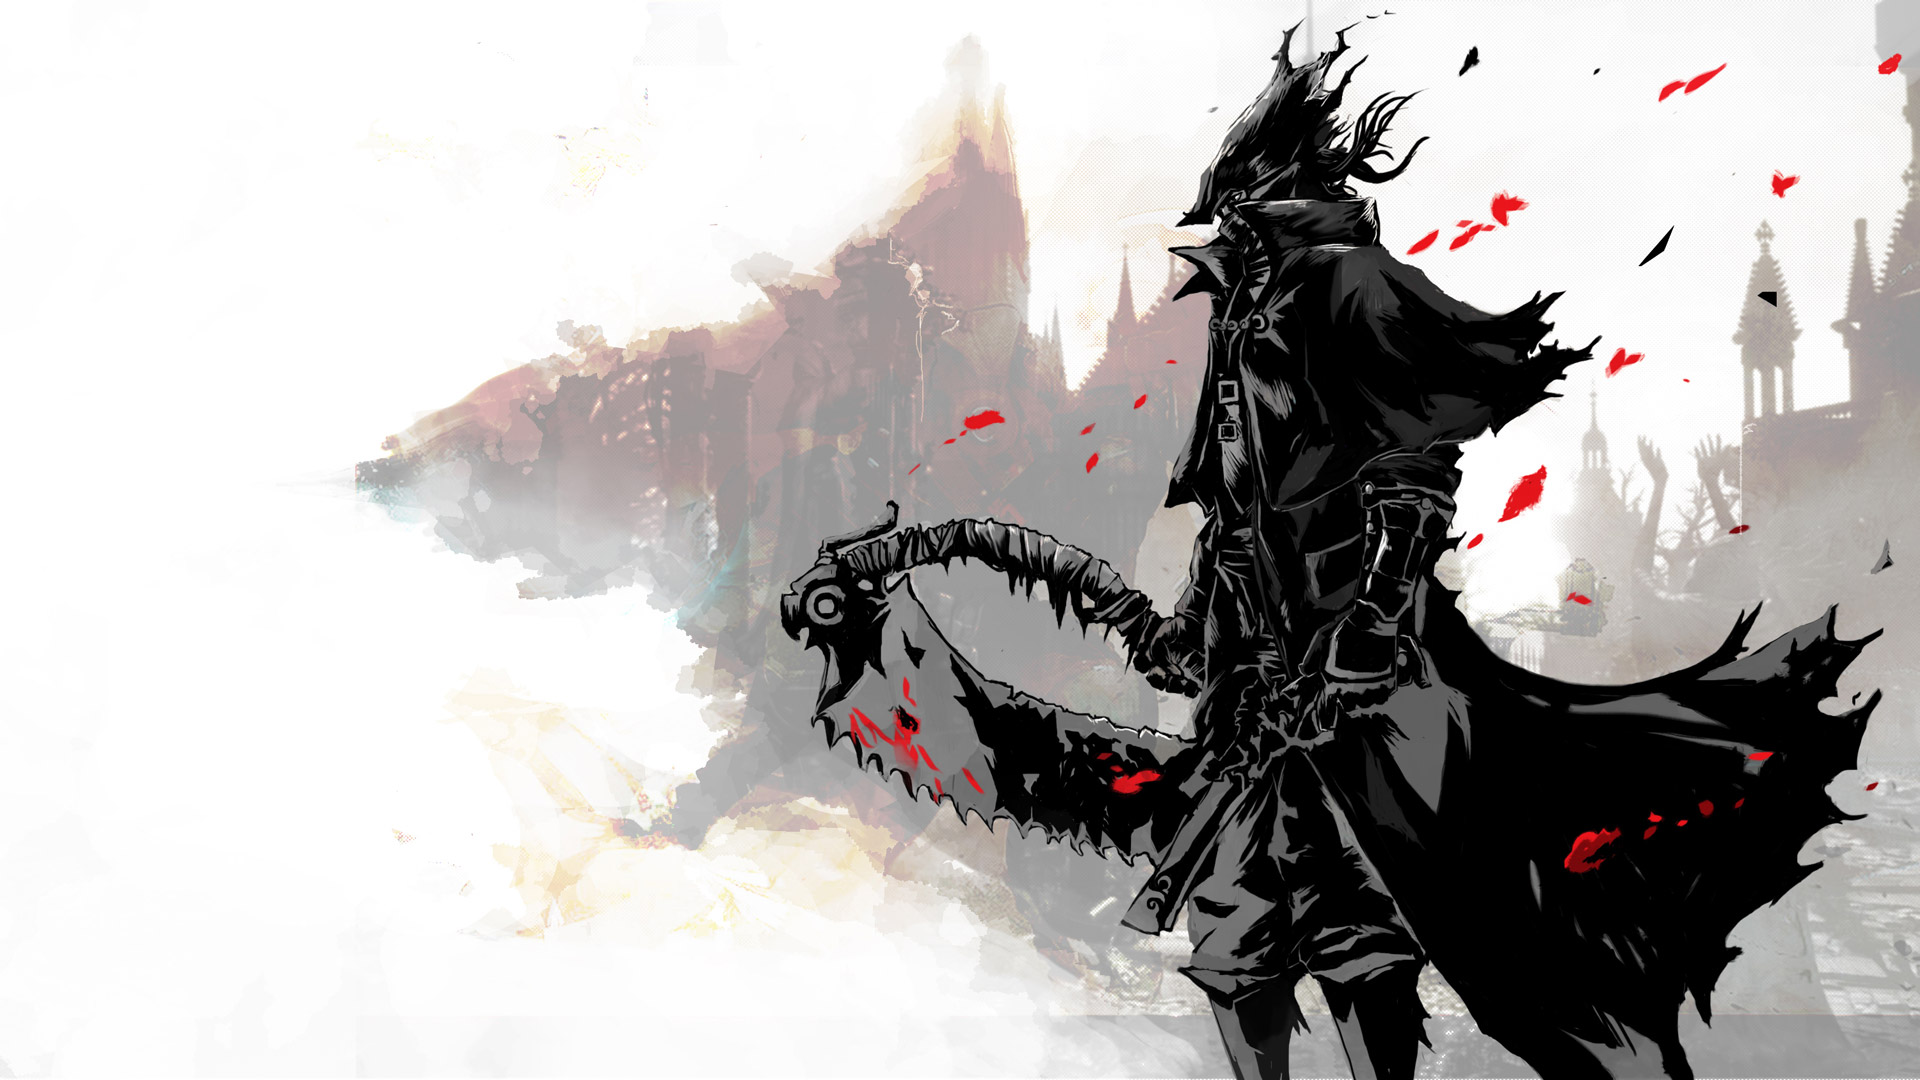 Free Bloodborne Wallpaper in 1920x1080